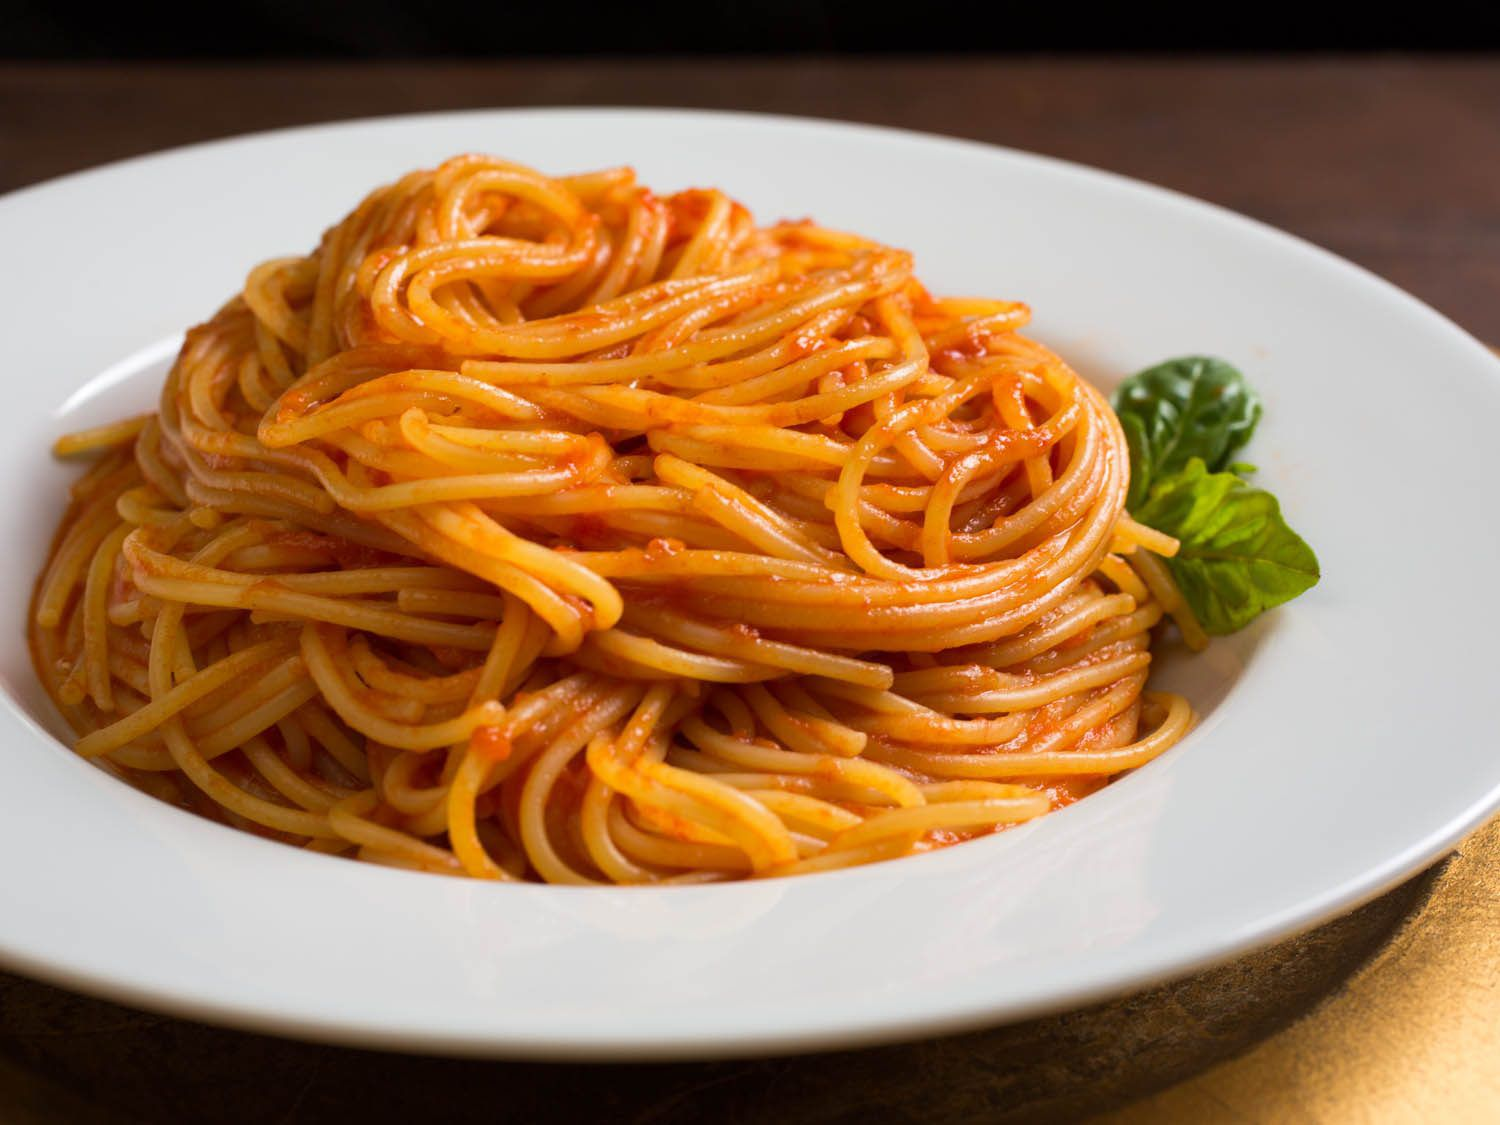 Plate of pasta with fresh tomato sauce.